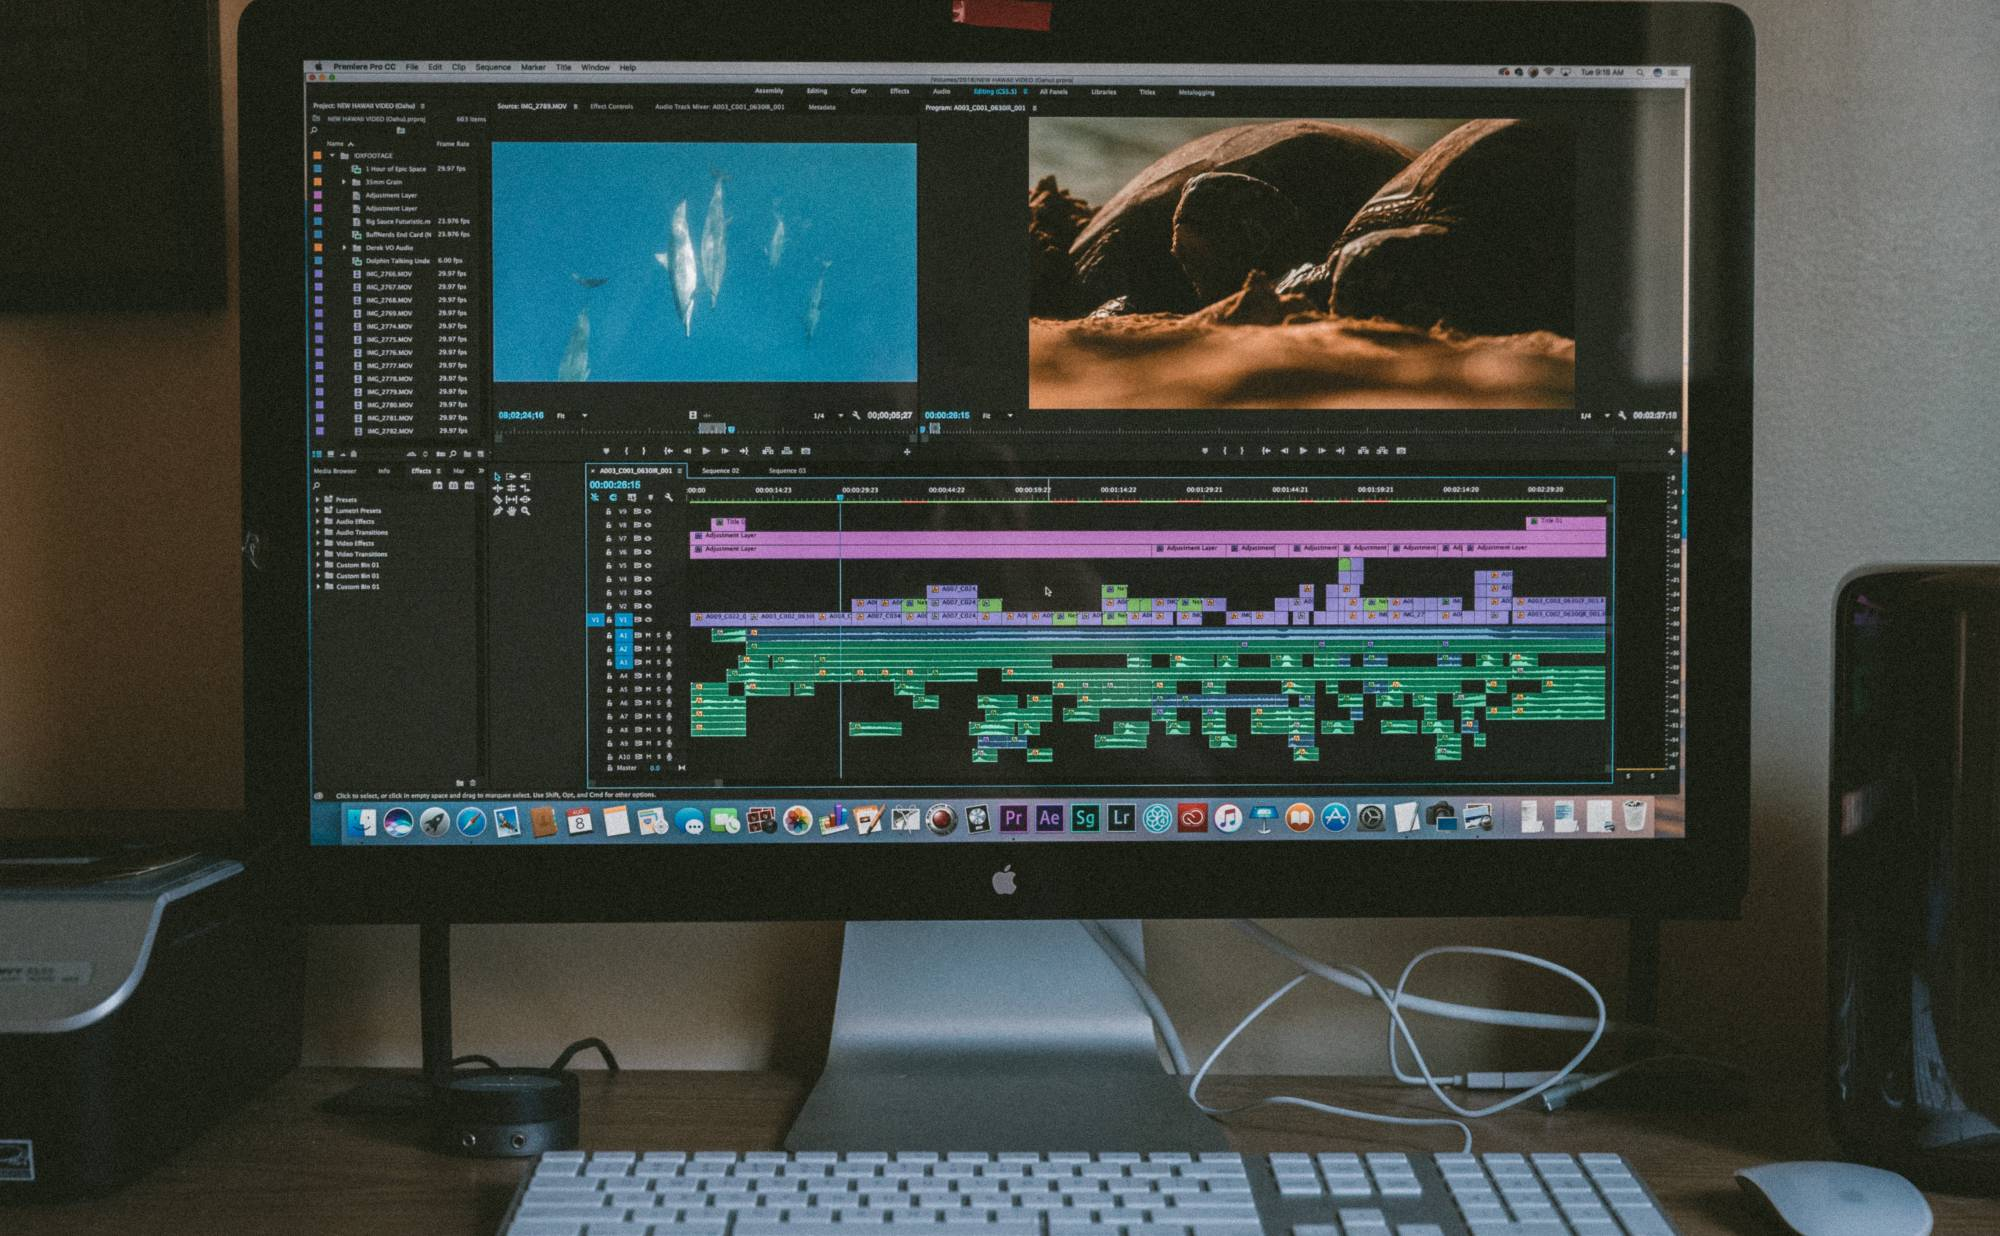 iMac with Adobe Premiere Pro